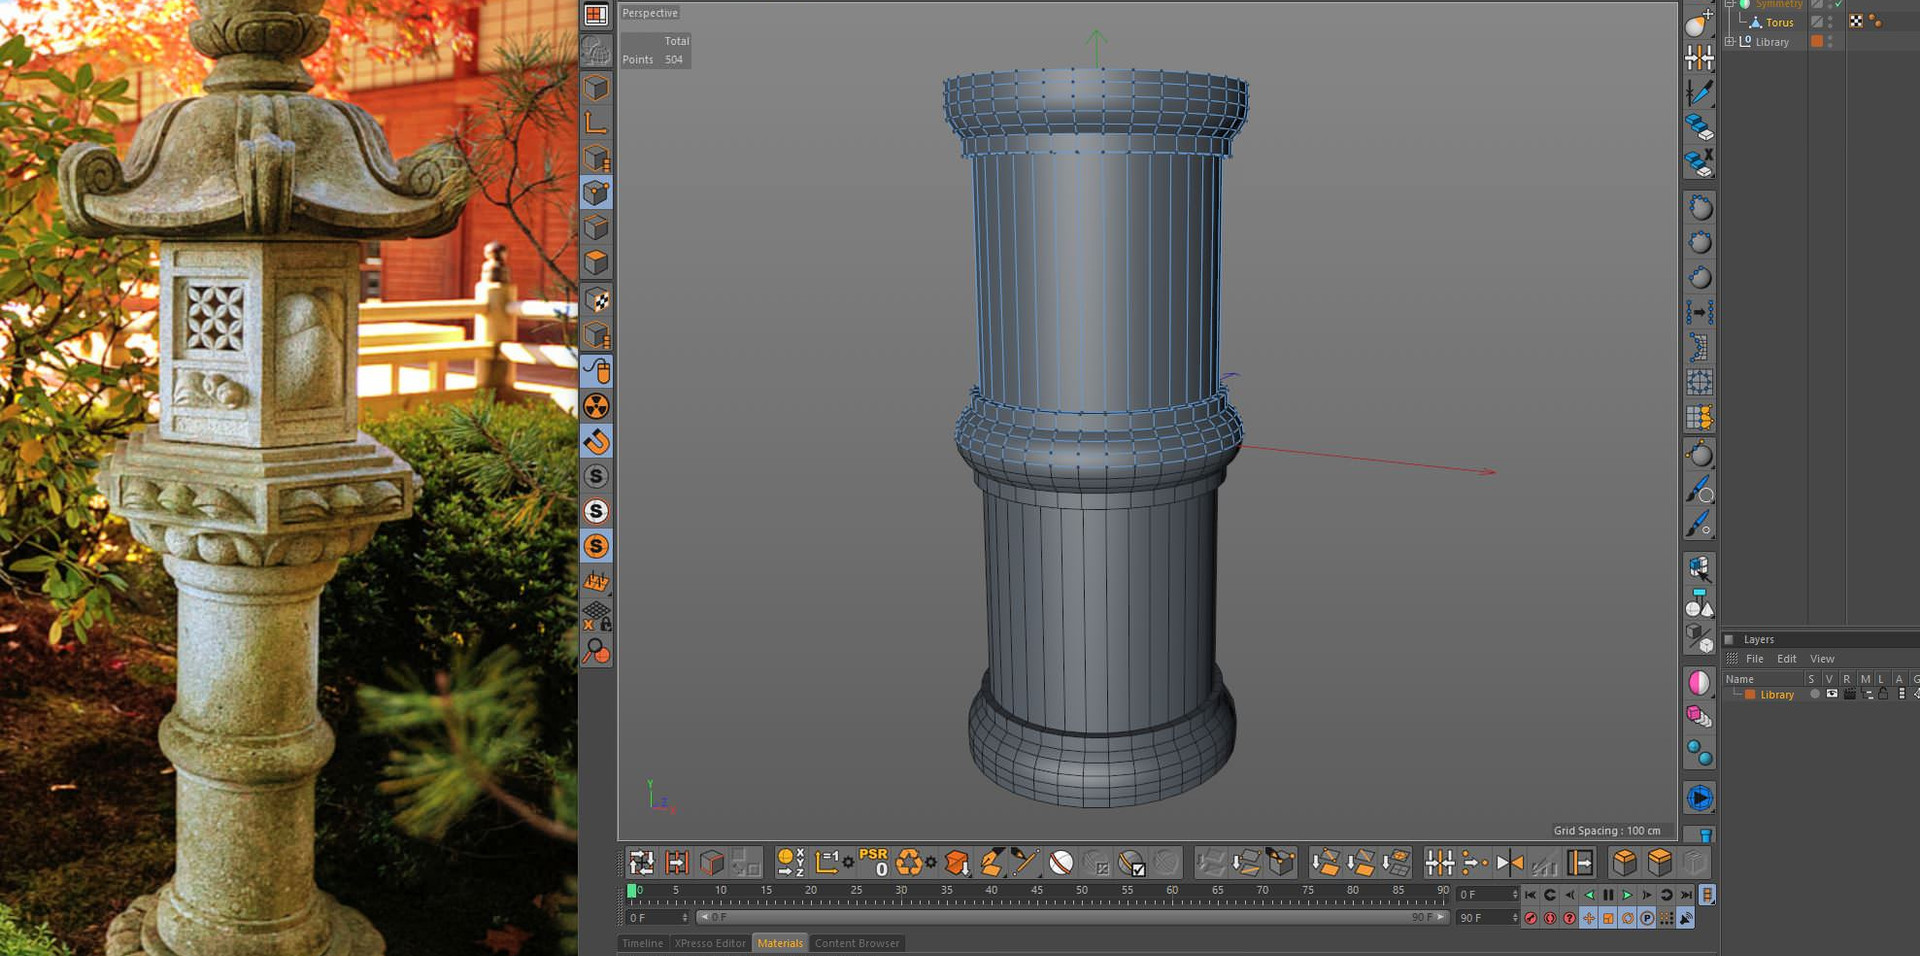 For the pillar (Sao) I used a Torus object as the starting point, with a Symmetry object to save time.